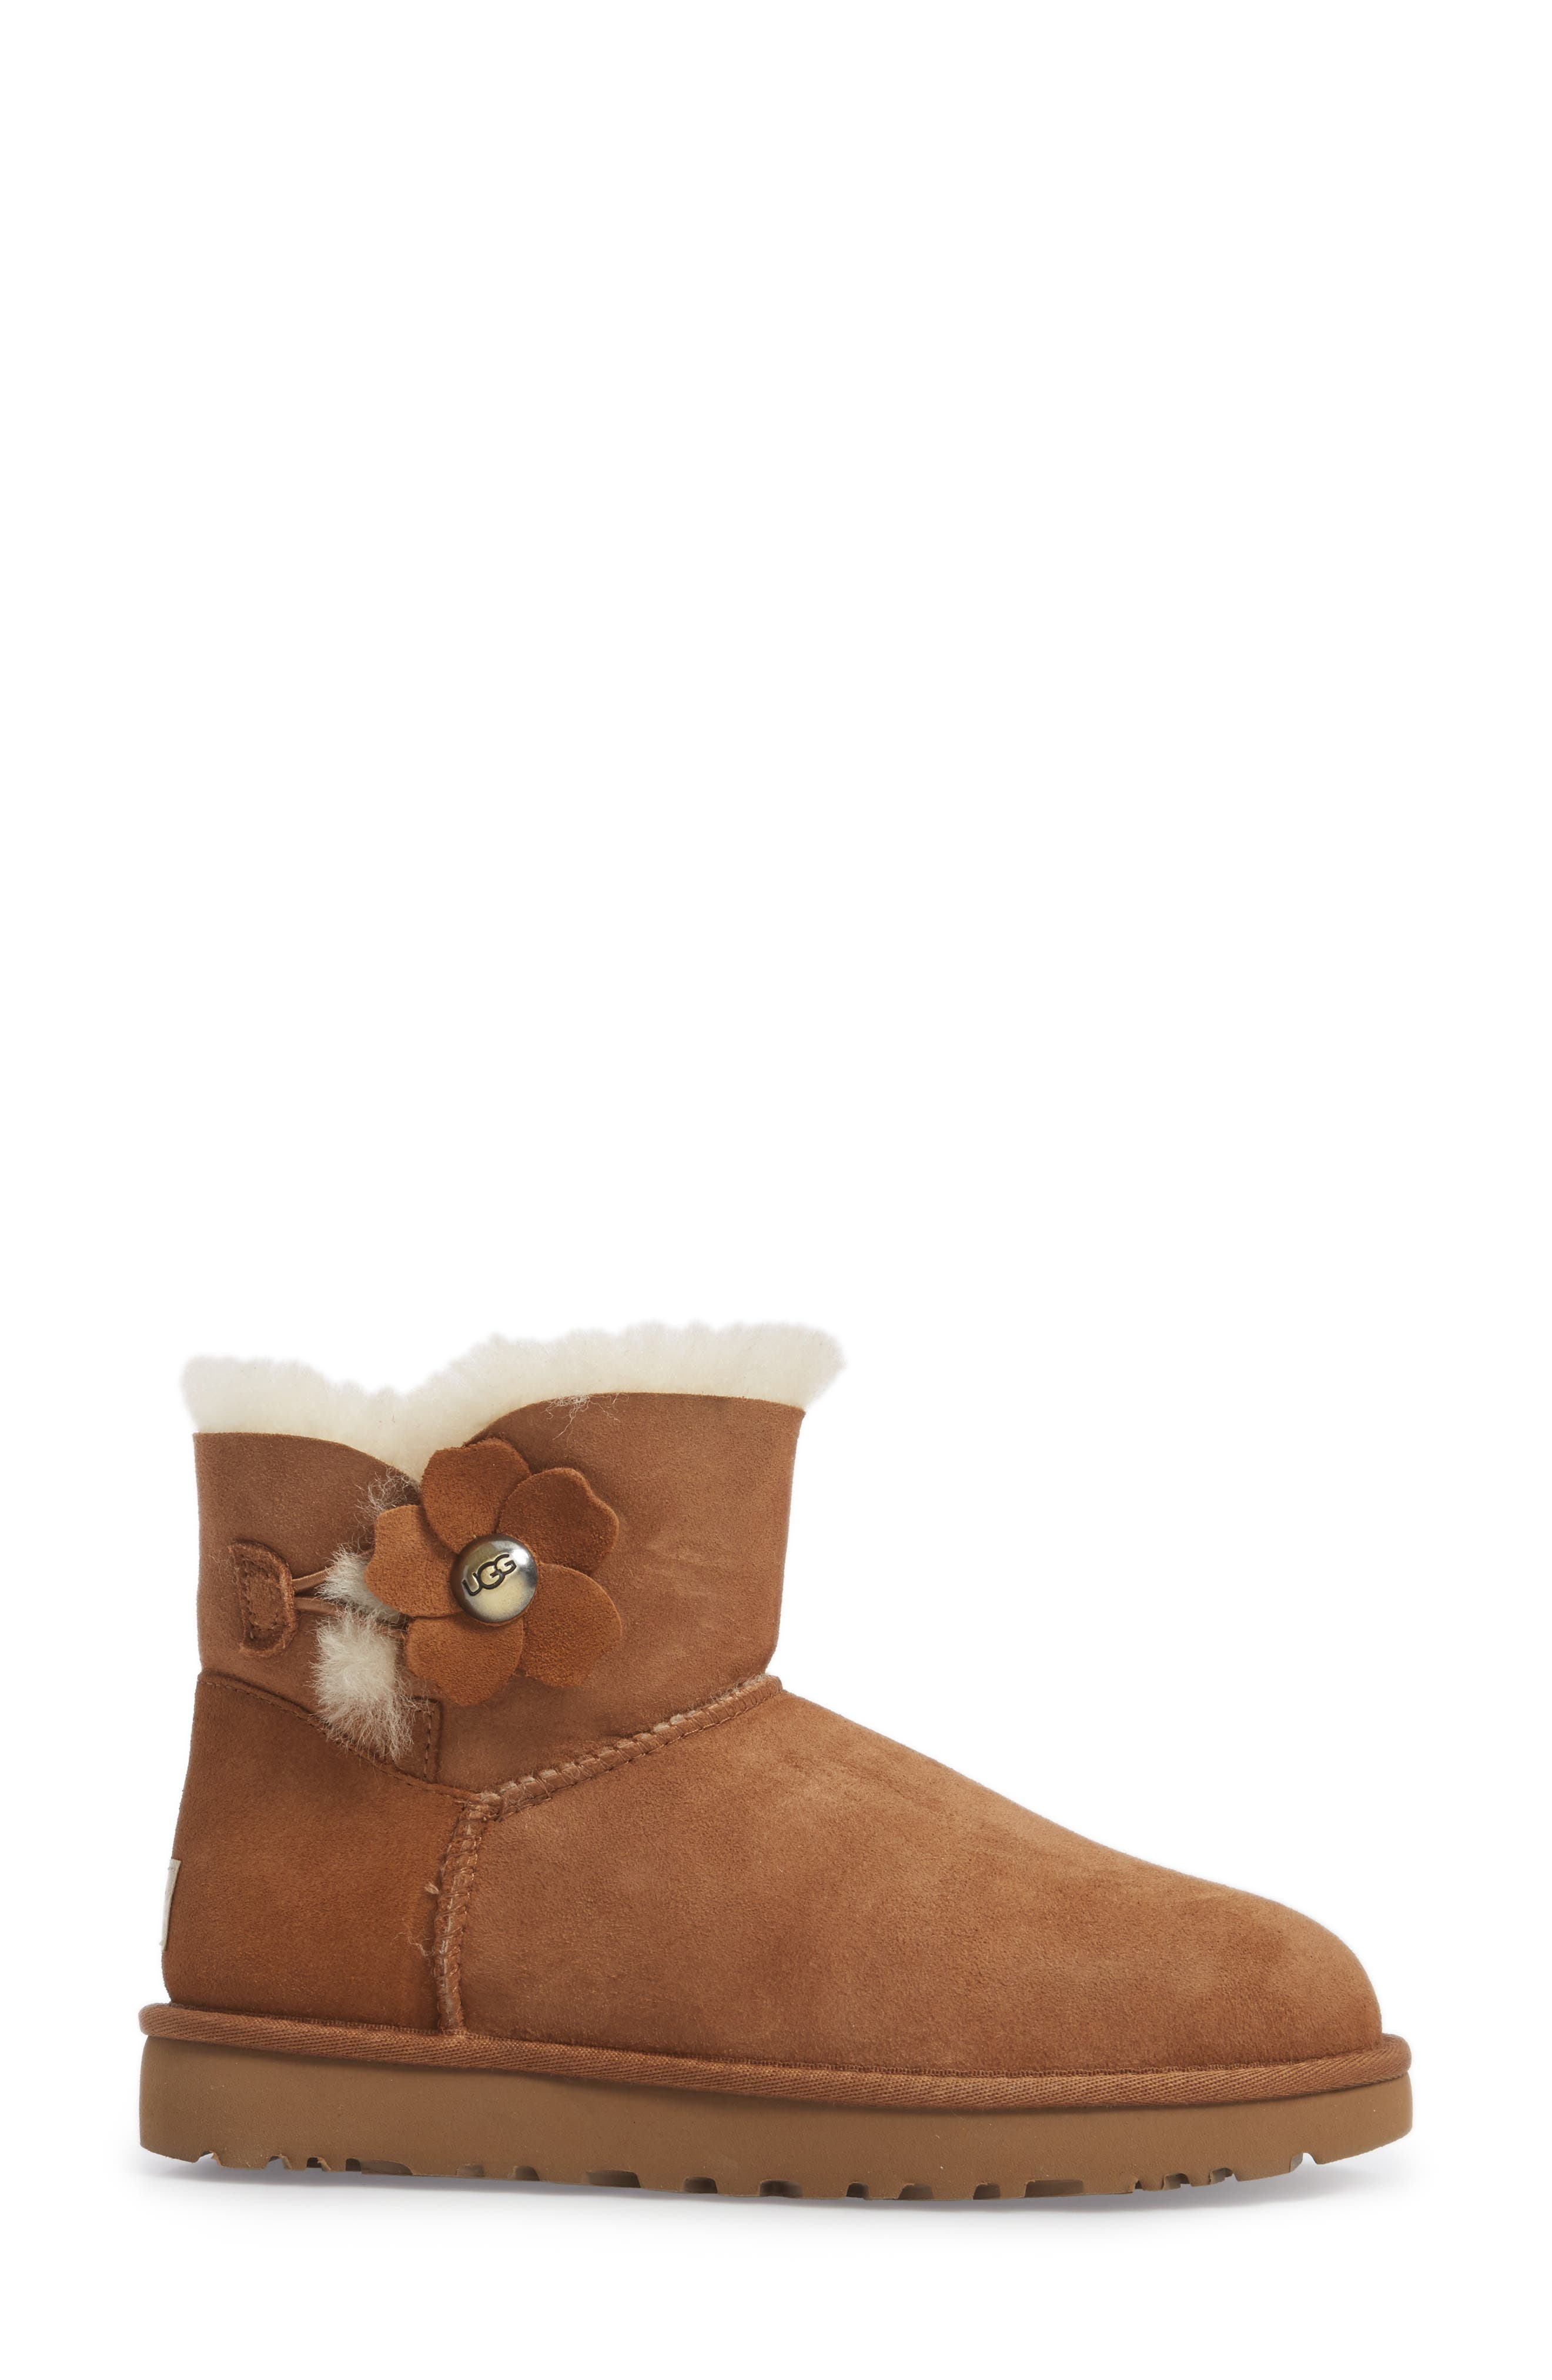 Alternate Image 3  - UGG® Mini Bailey Button Poppy Genuine Shearling Lined Boot (Women)